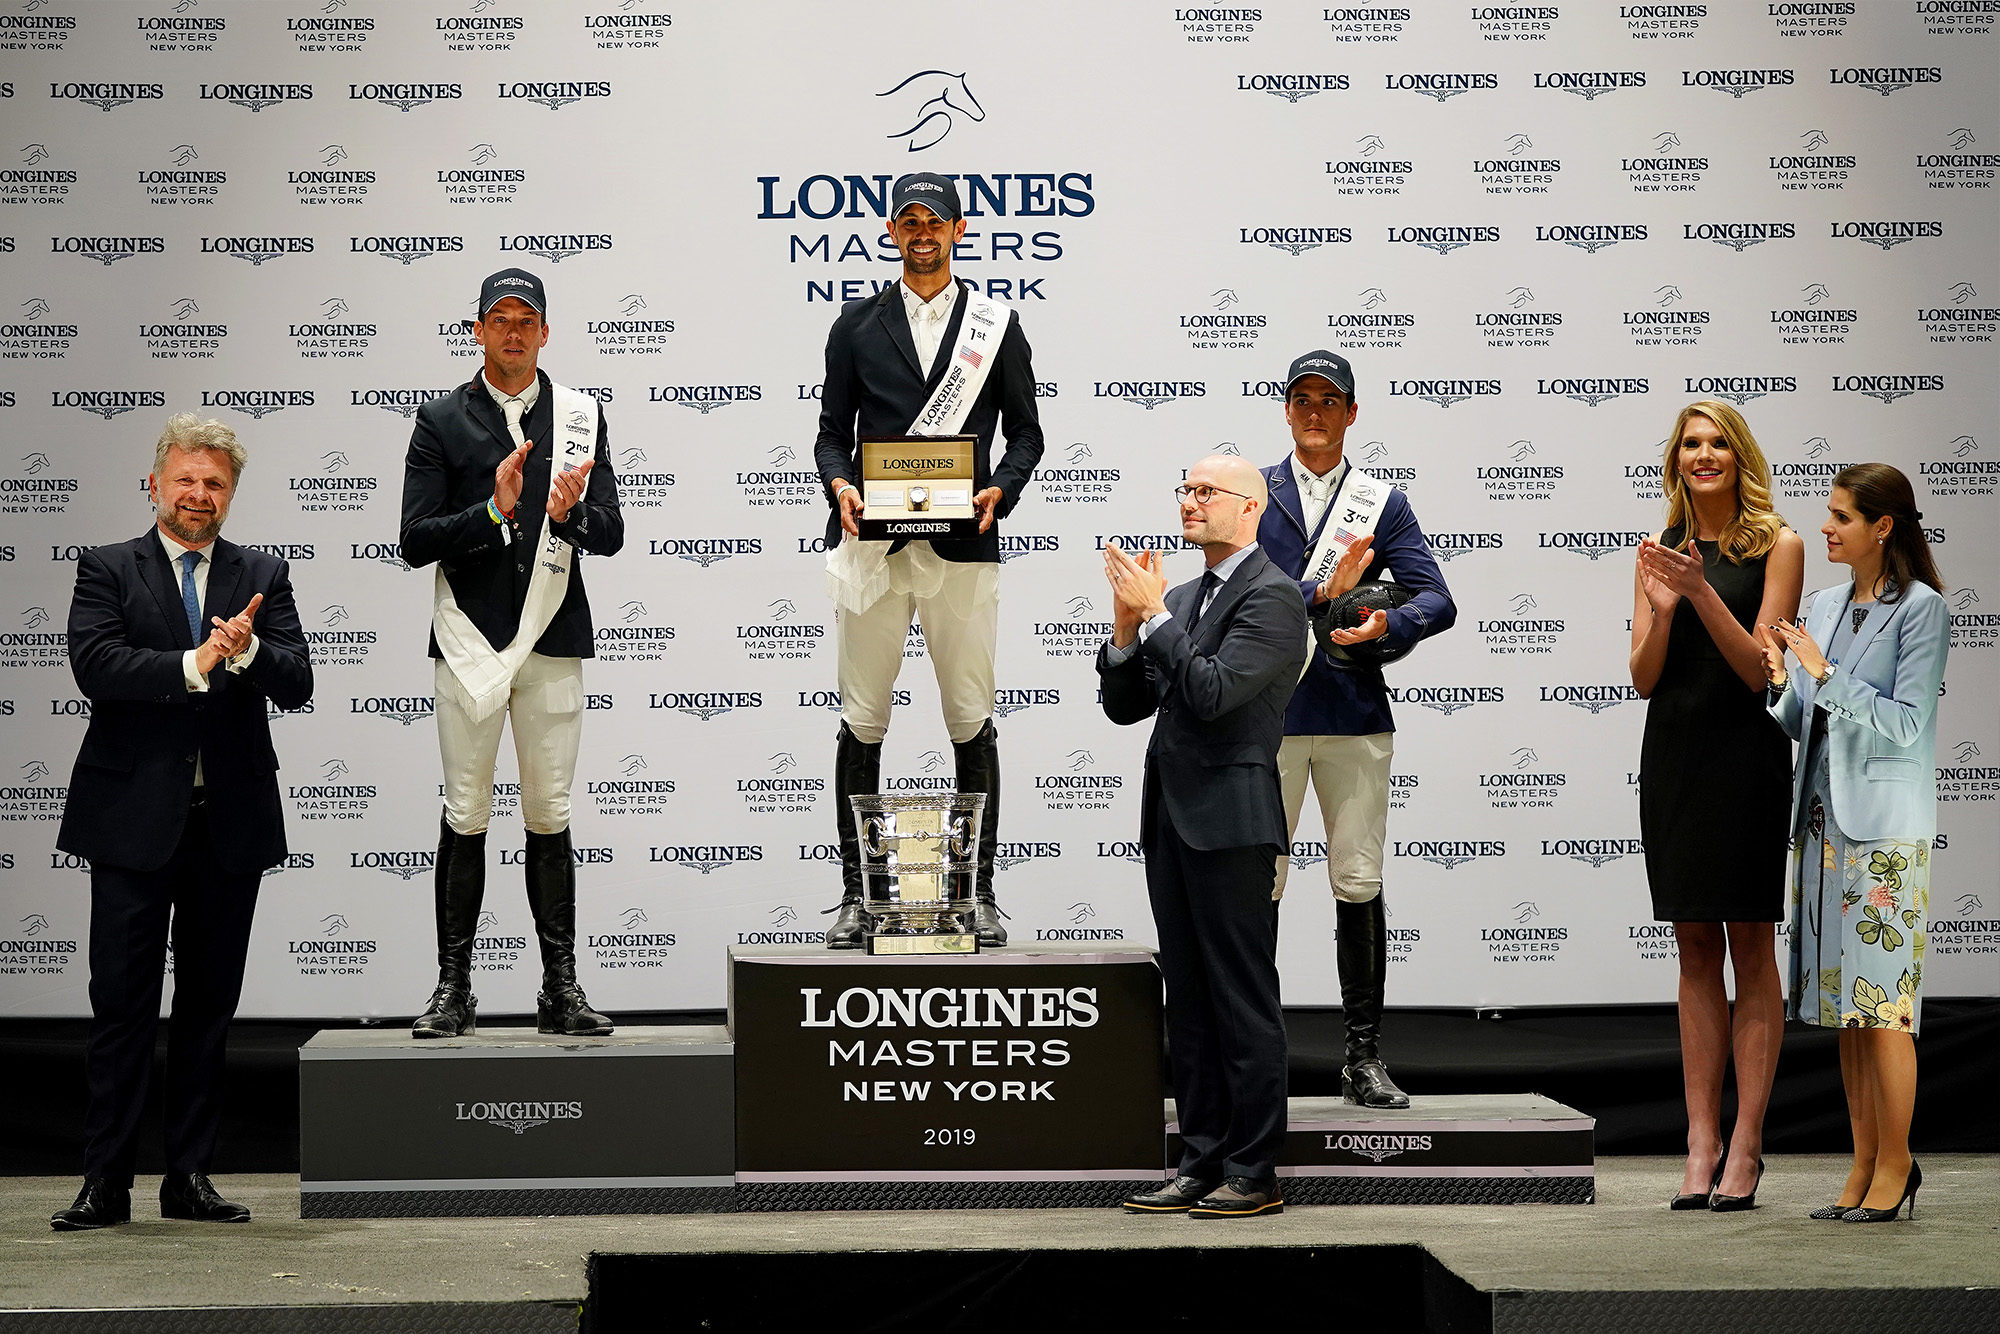 Arena Derby Jumping Into The World Of The Longines